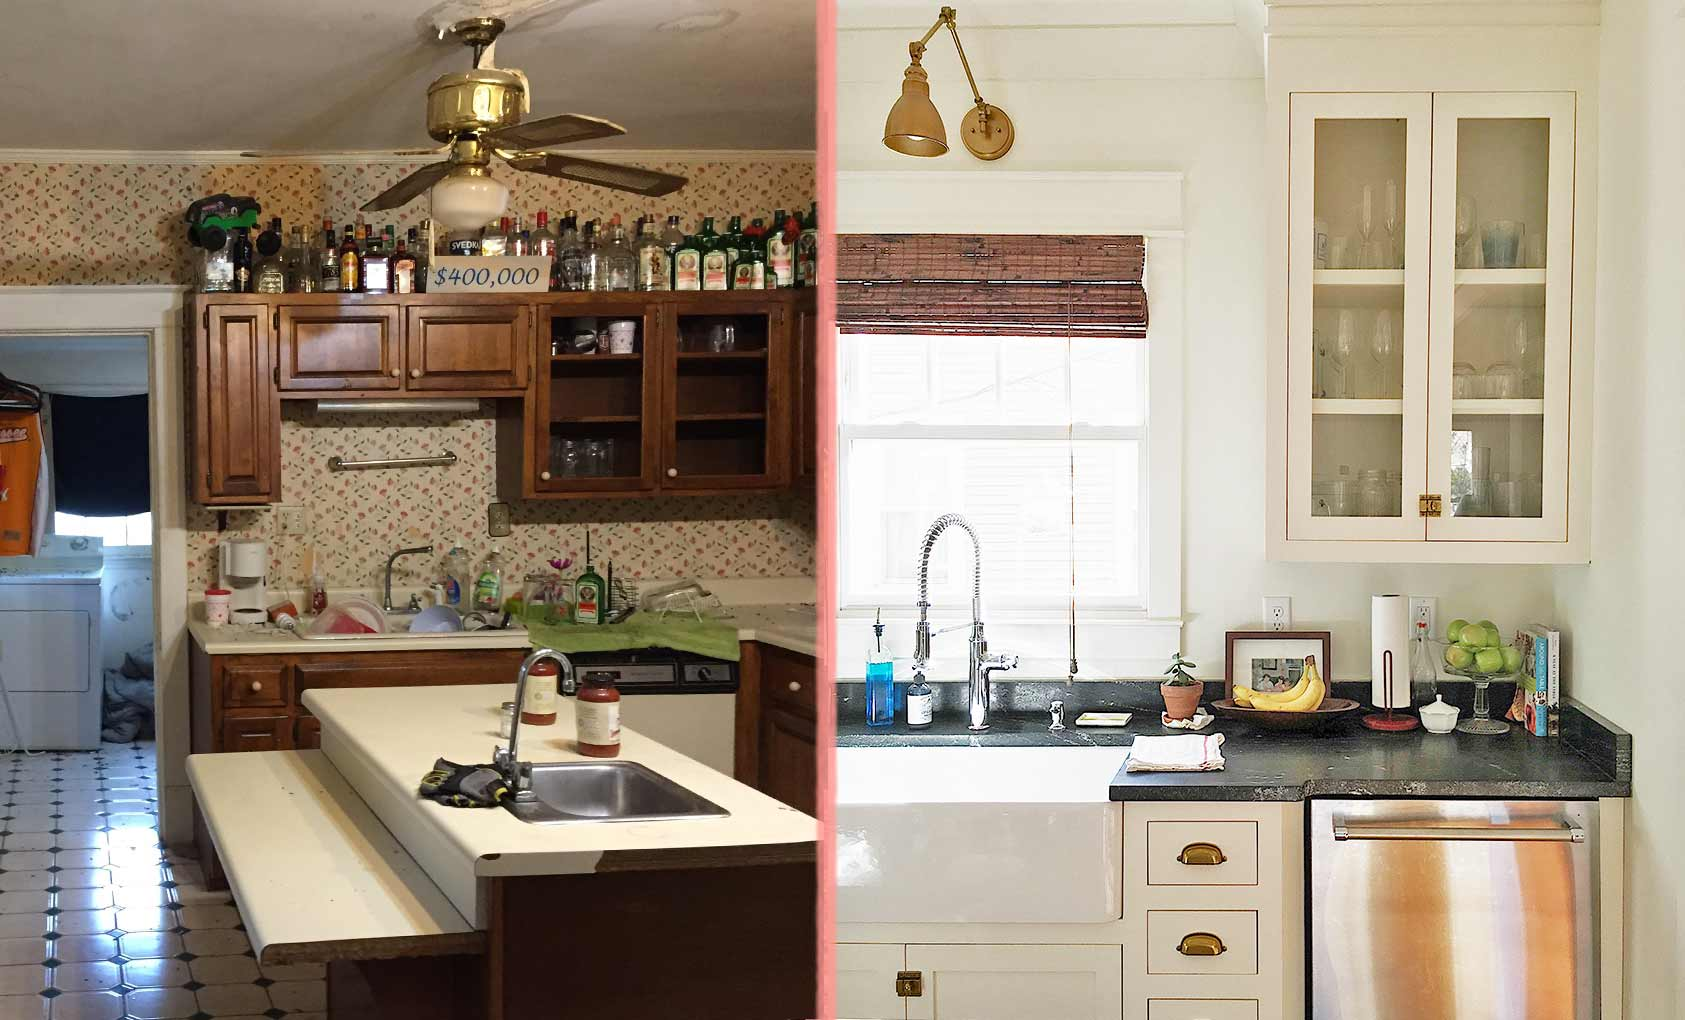 Before & After: A Childhood Home Reimagined, Design*Sponge